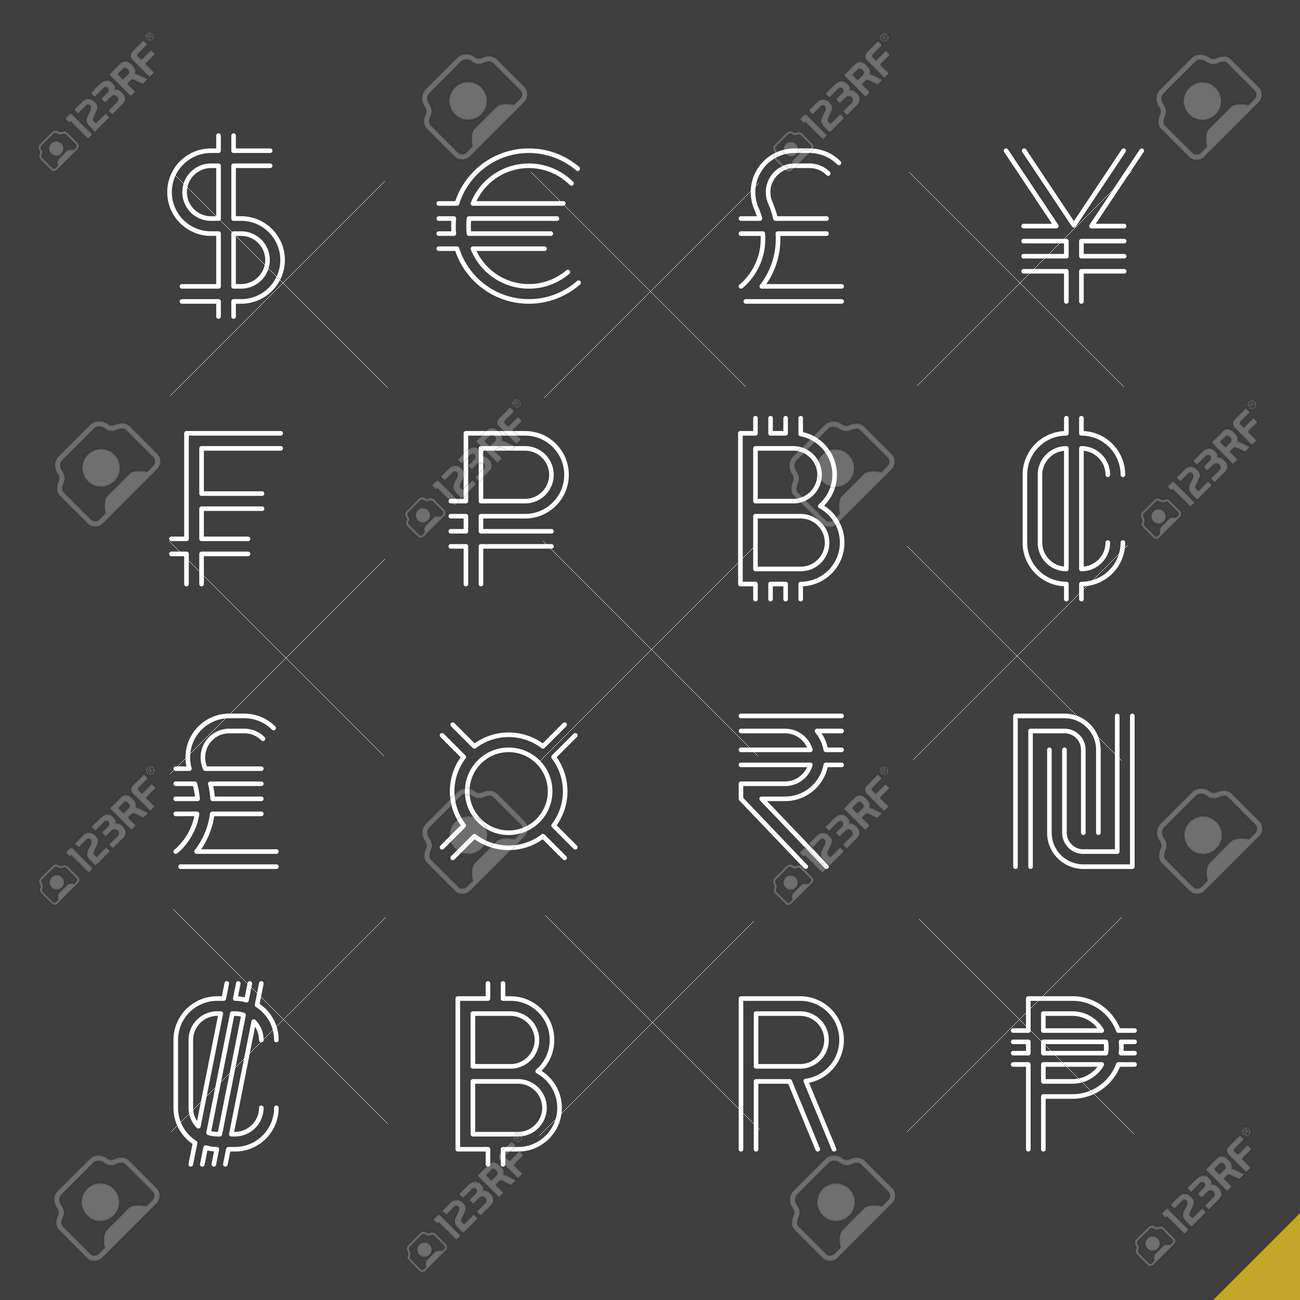 Thin linear world currency symbols icons set with baht, bitcoin, cent, colon, dollar, euro, franc, peso, pound, ruble, rupee, shekel, yen and generic currency sign - 48711864